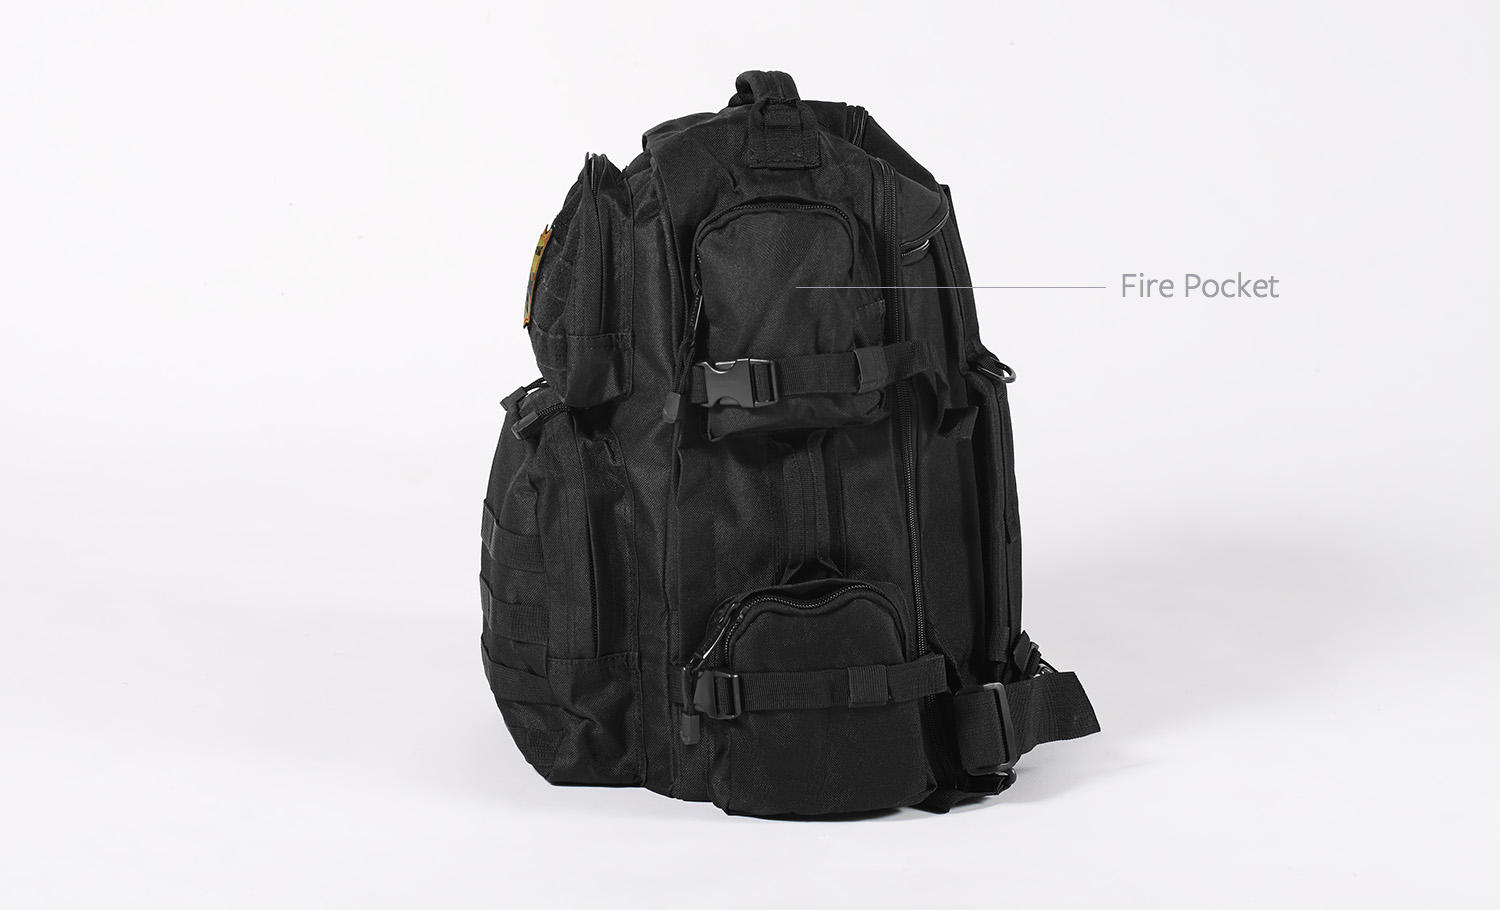 DUAL PACK Fire Pocket